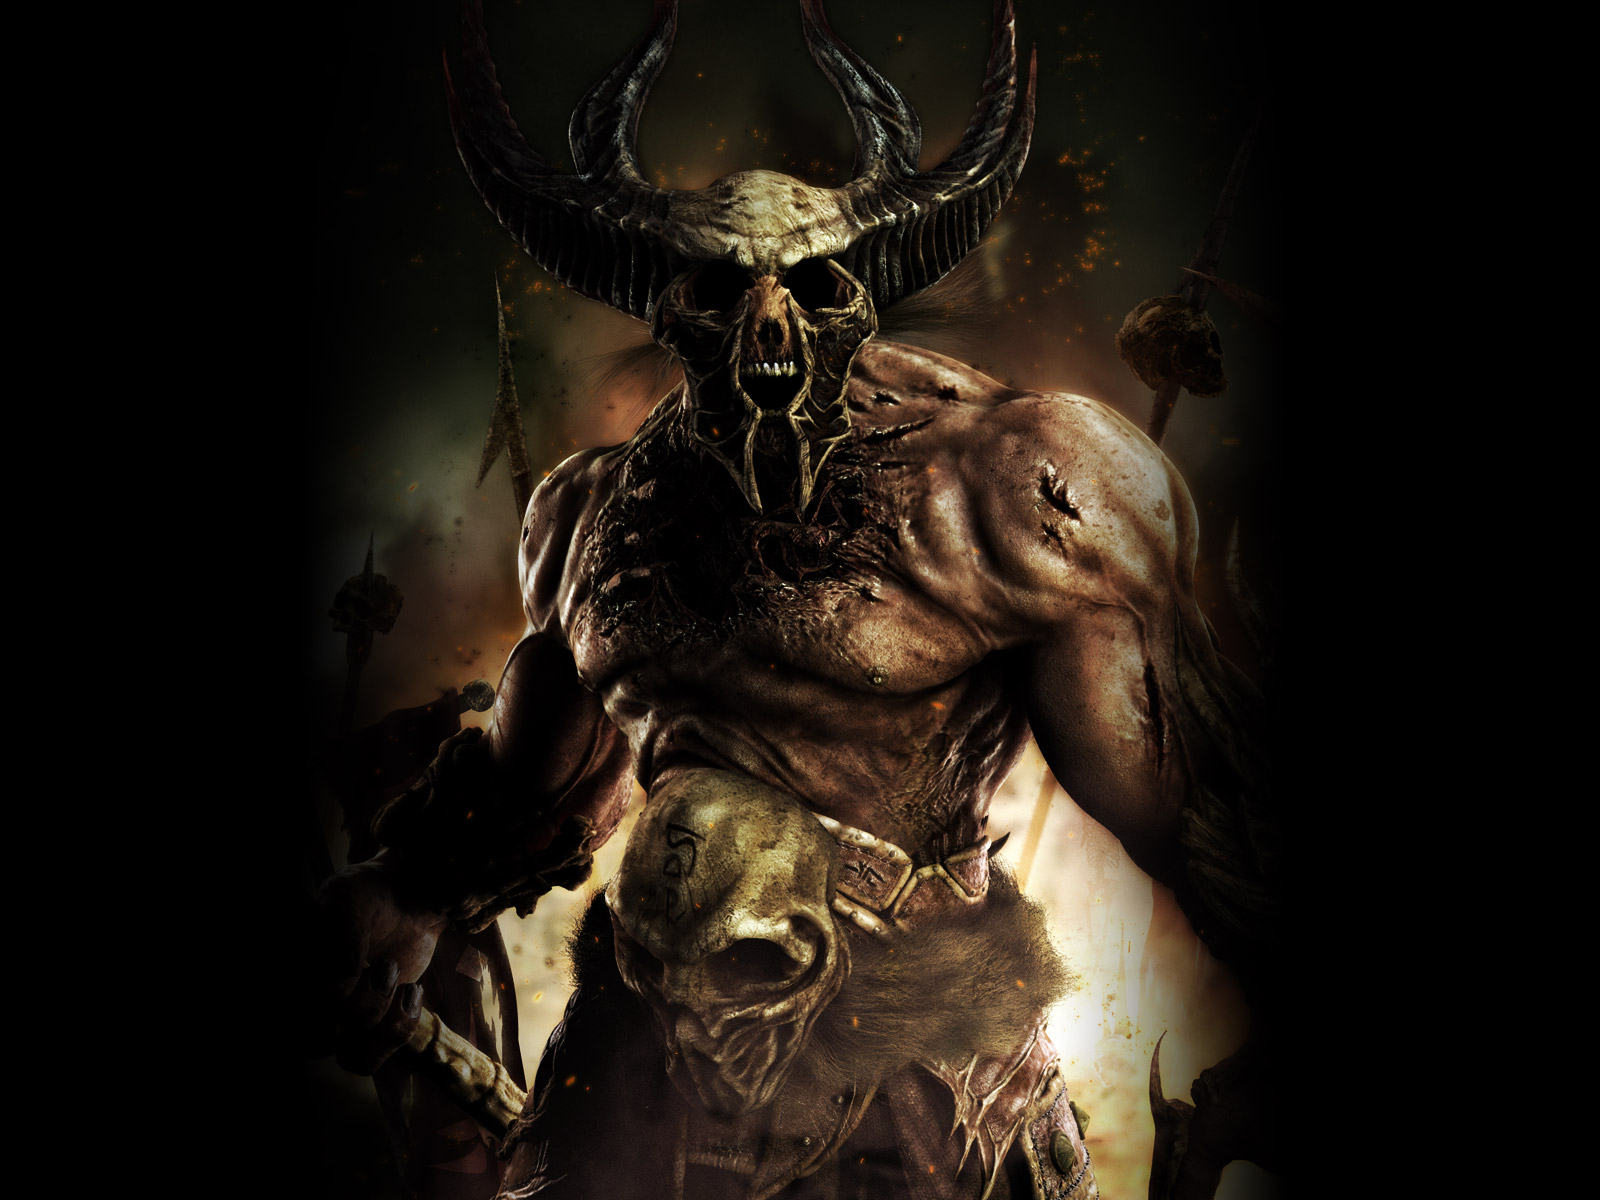 Demon wallpaper hd wallpapersafari - Devil skull wallpaper ...